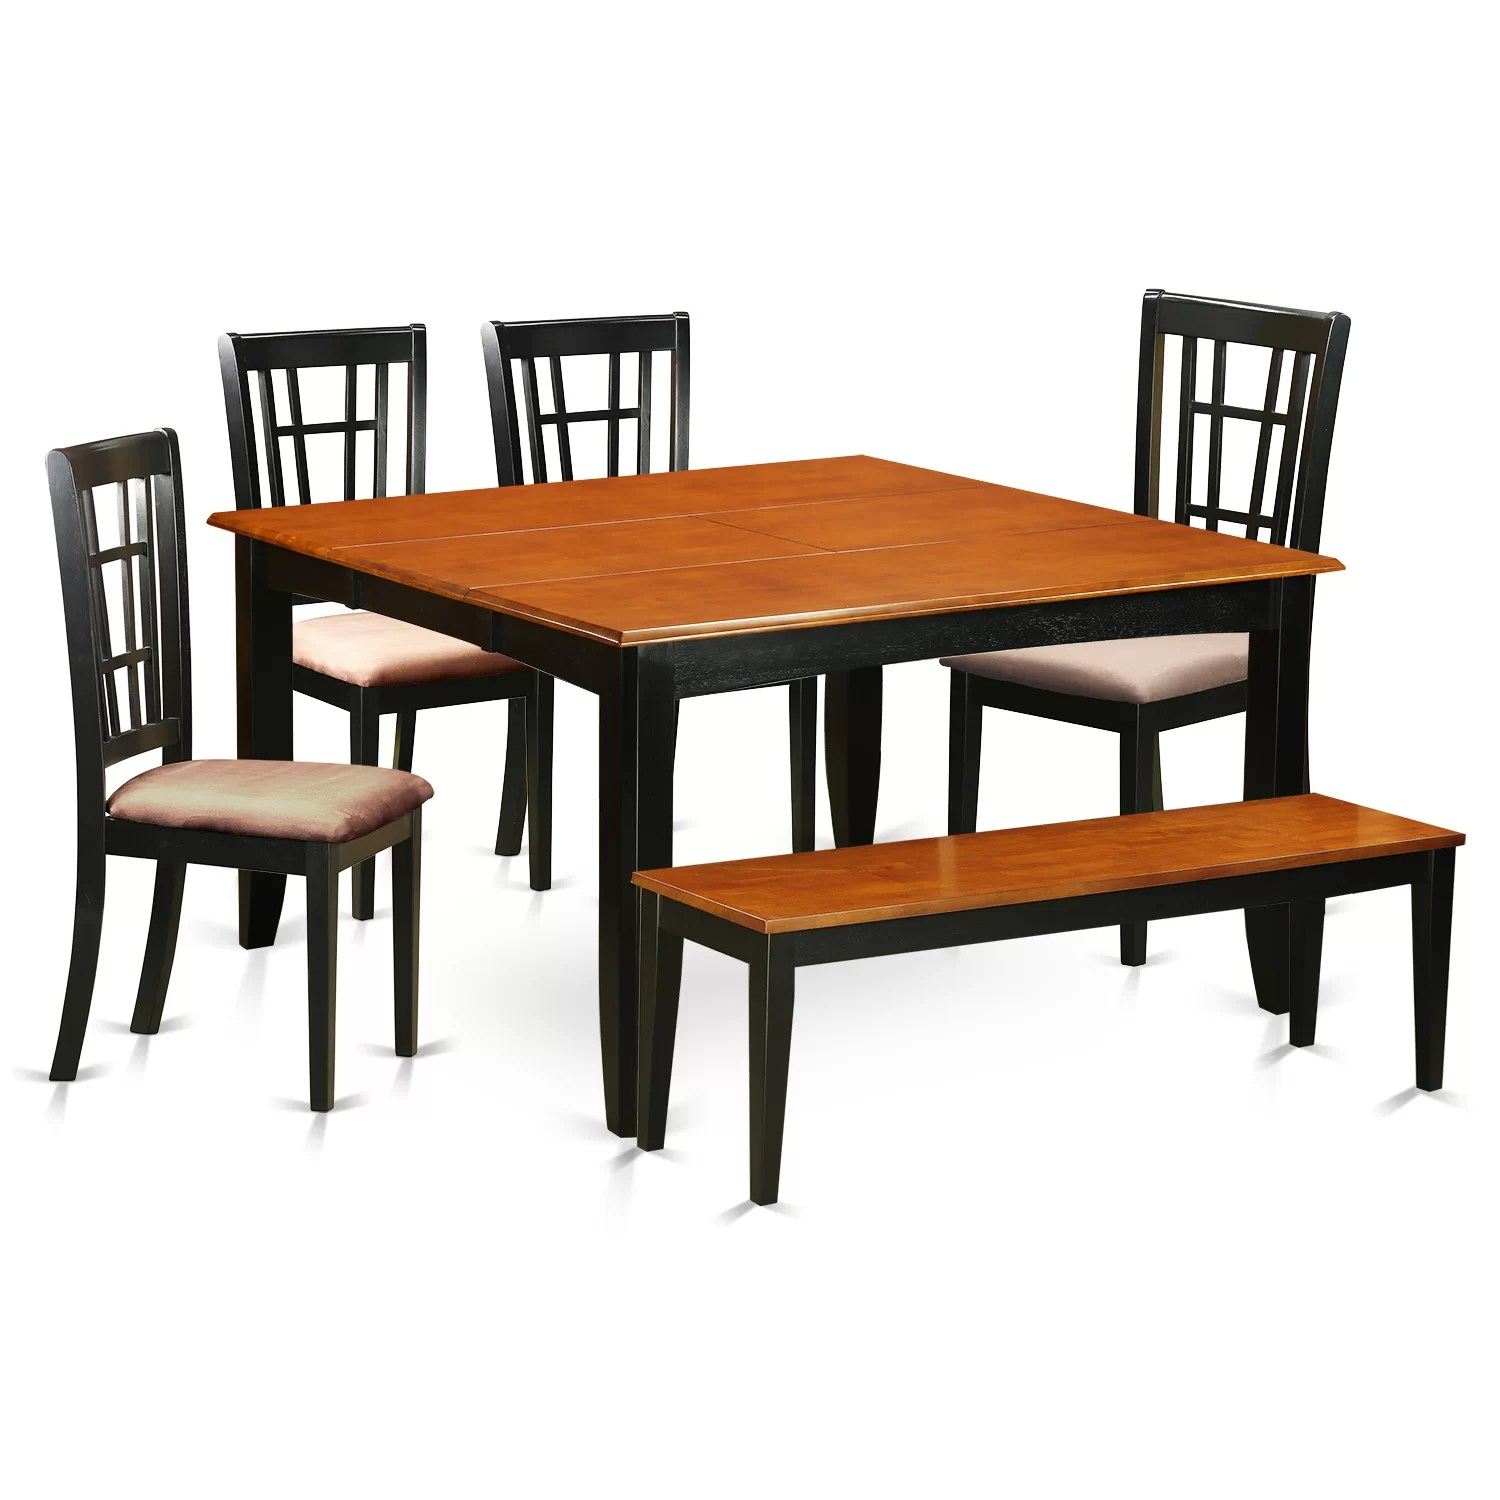 Wayfair Dining Chairs East West Parfait 6 Piece Dining Set Wayfair